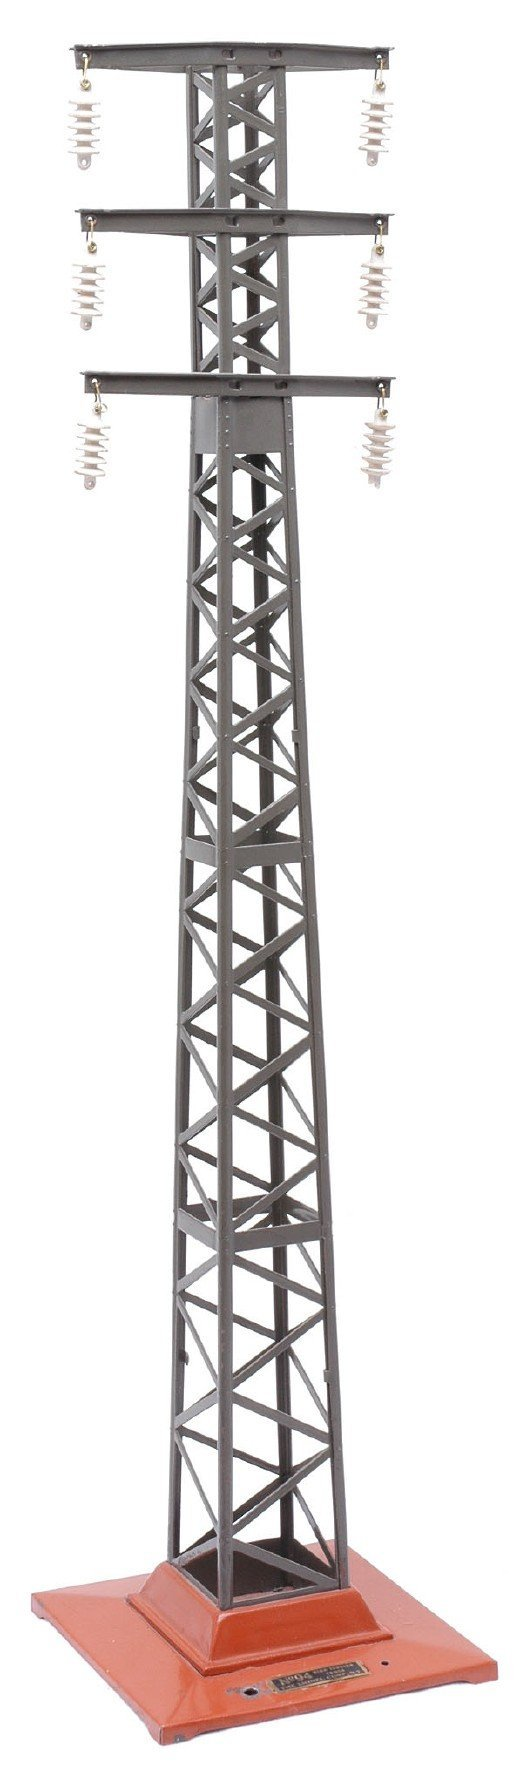 2514: Lionel 94 High Tension Tower Terra Cotta Base